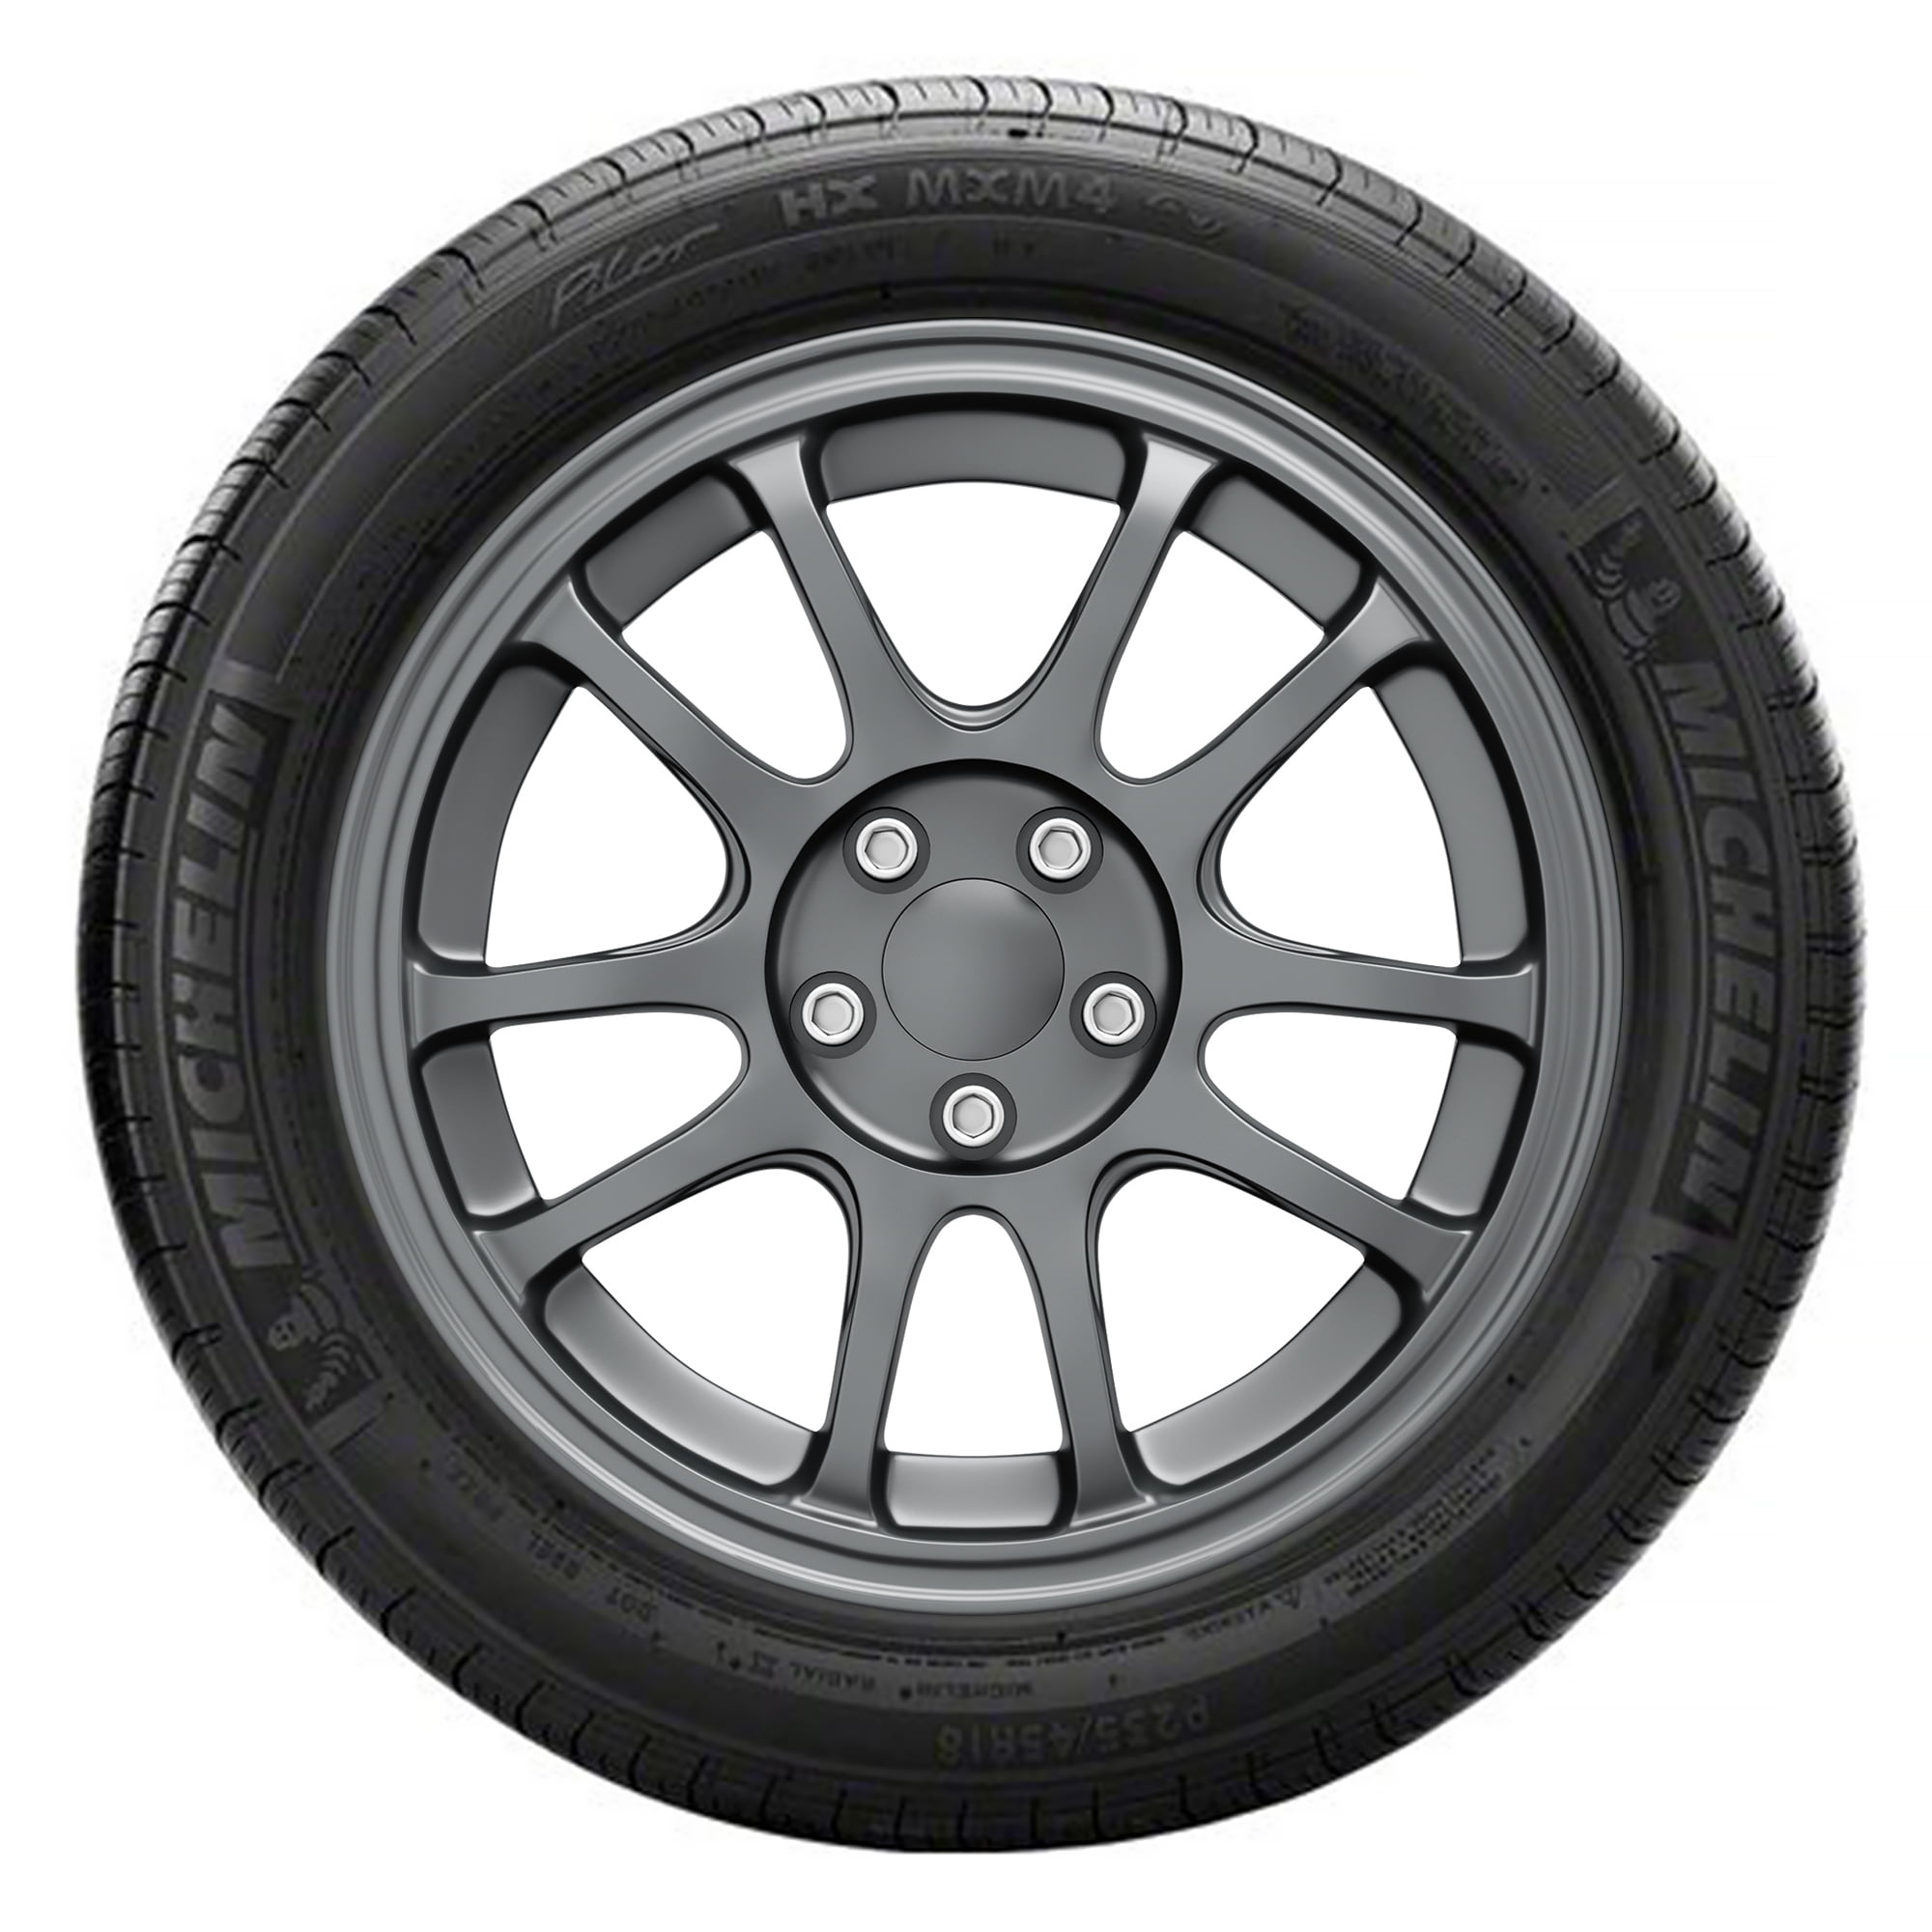 Michelin Pilot MXM4 Highway Tire P235/50R18 97V